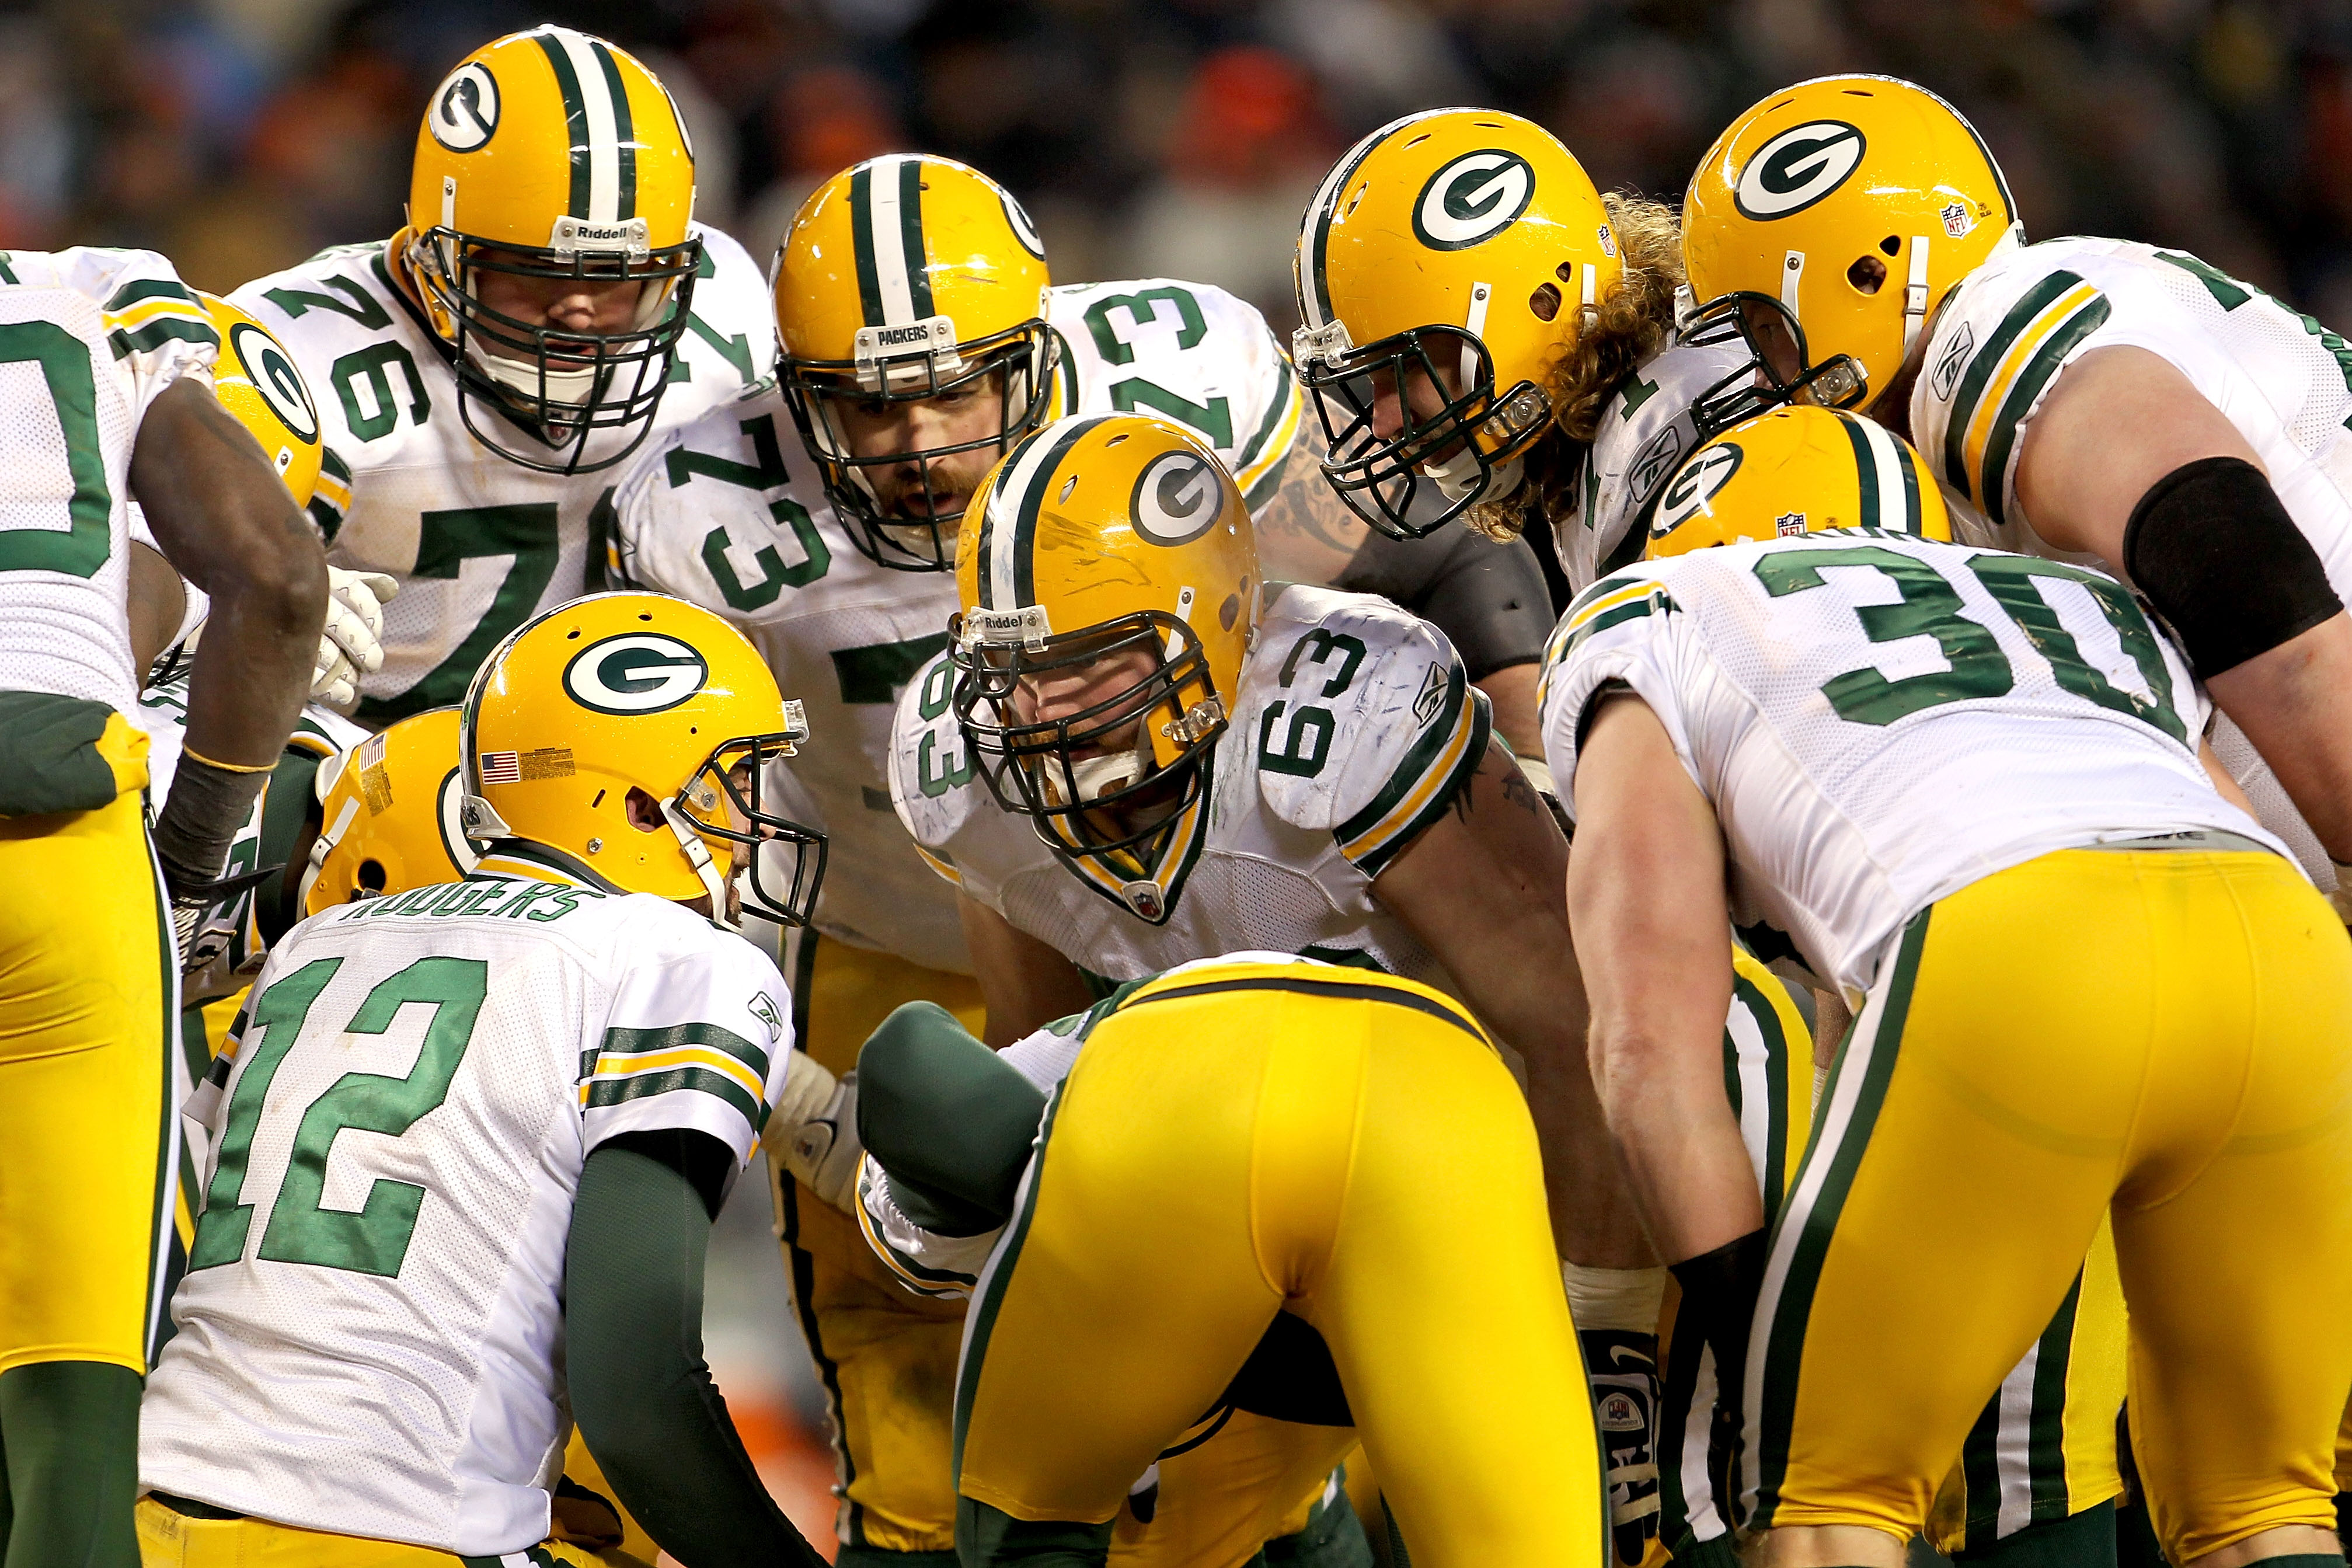 CHICAGO, IL - JANUARY 23:  Aaron Rodgers #12 of the Green Bay Packers huddles with his teammates against the Chicago Bears in the NFC Championship Game at Soldier Field on January 23, 2011 in Chicago, Illinois.  (Photo by Jamie Squire/Getty Images)